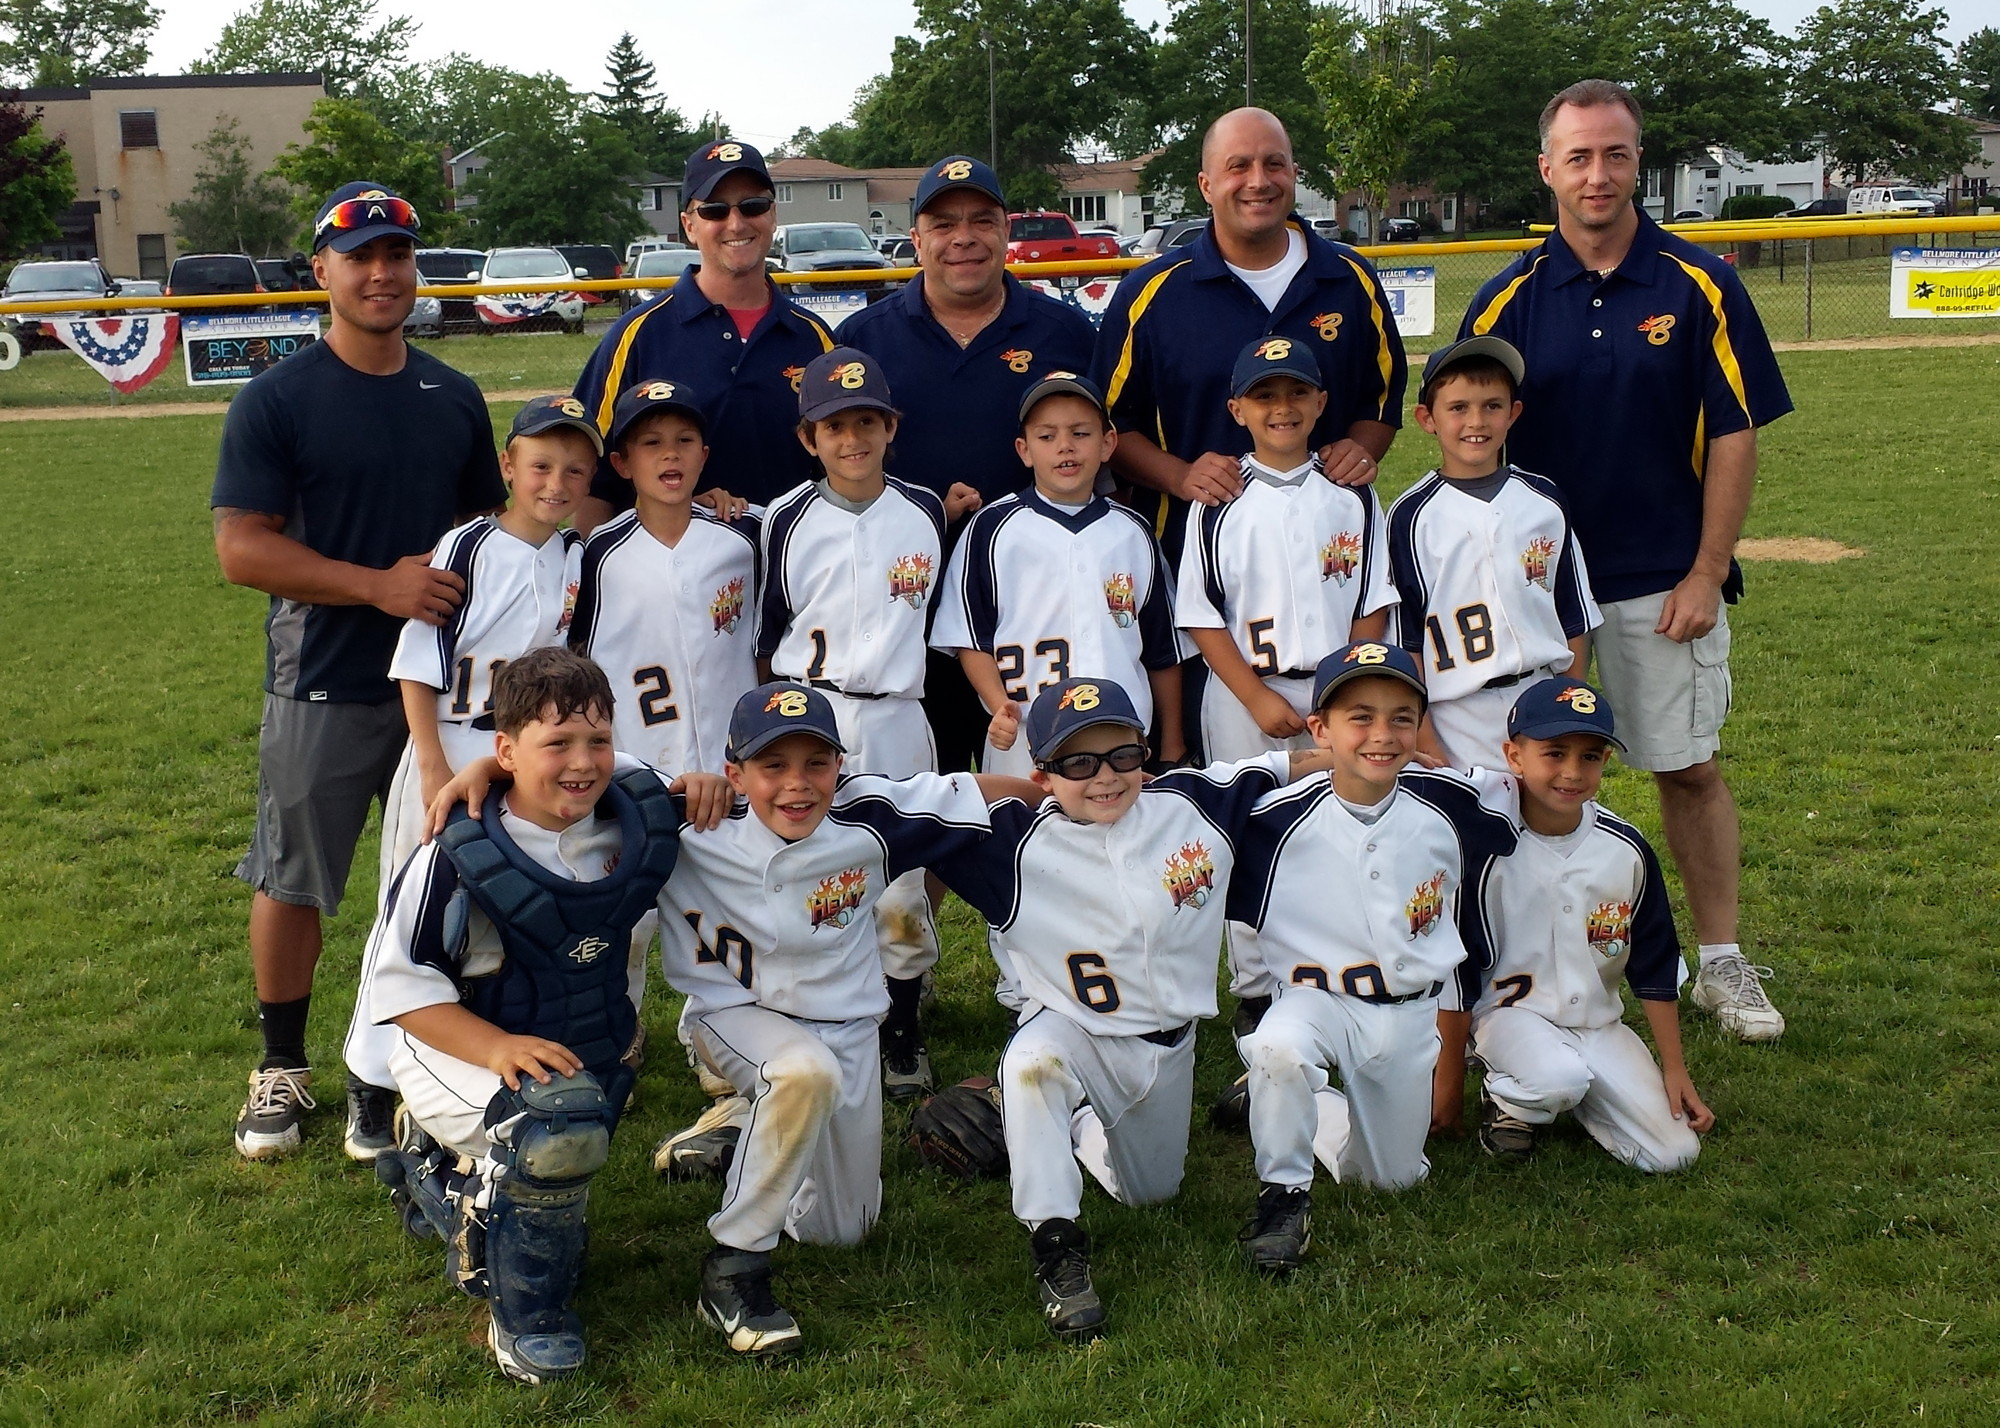 The Bellmore Heat tournament team for 8-year-olds captured the National Junior Baseball League 2013 Long Island National League Championship this spring.